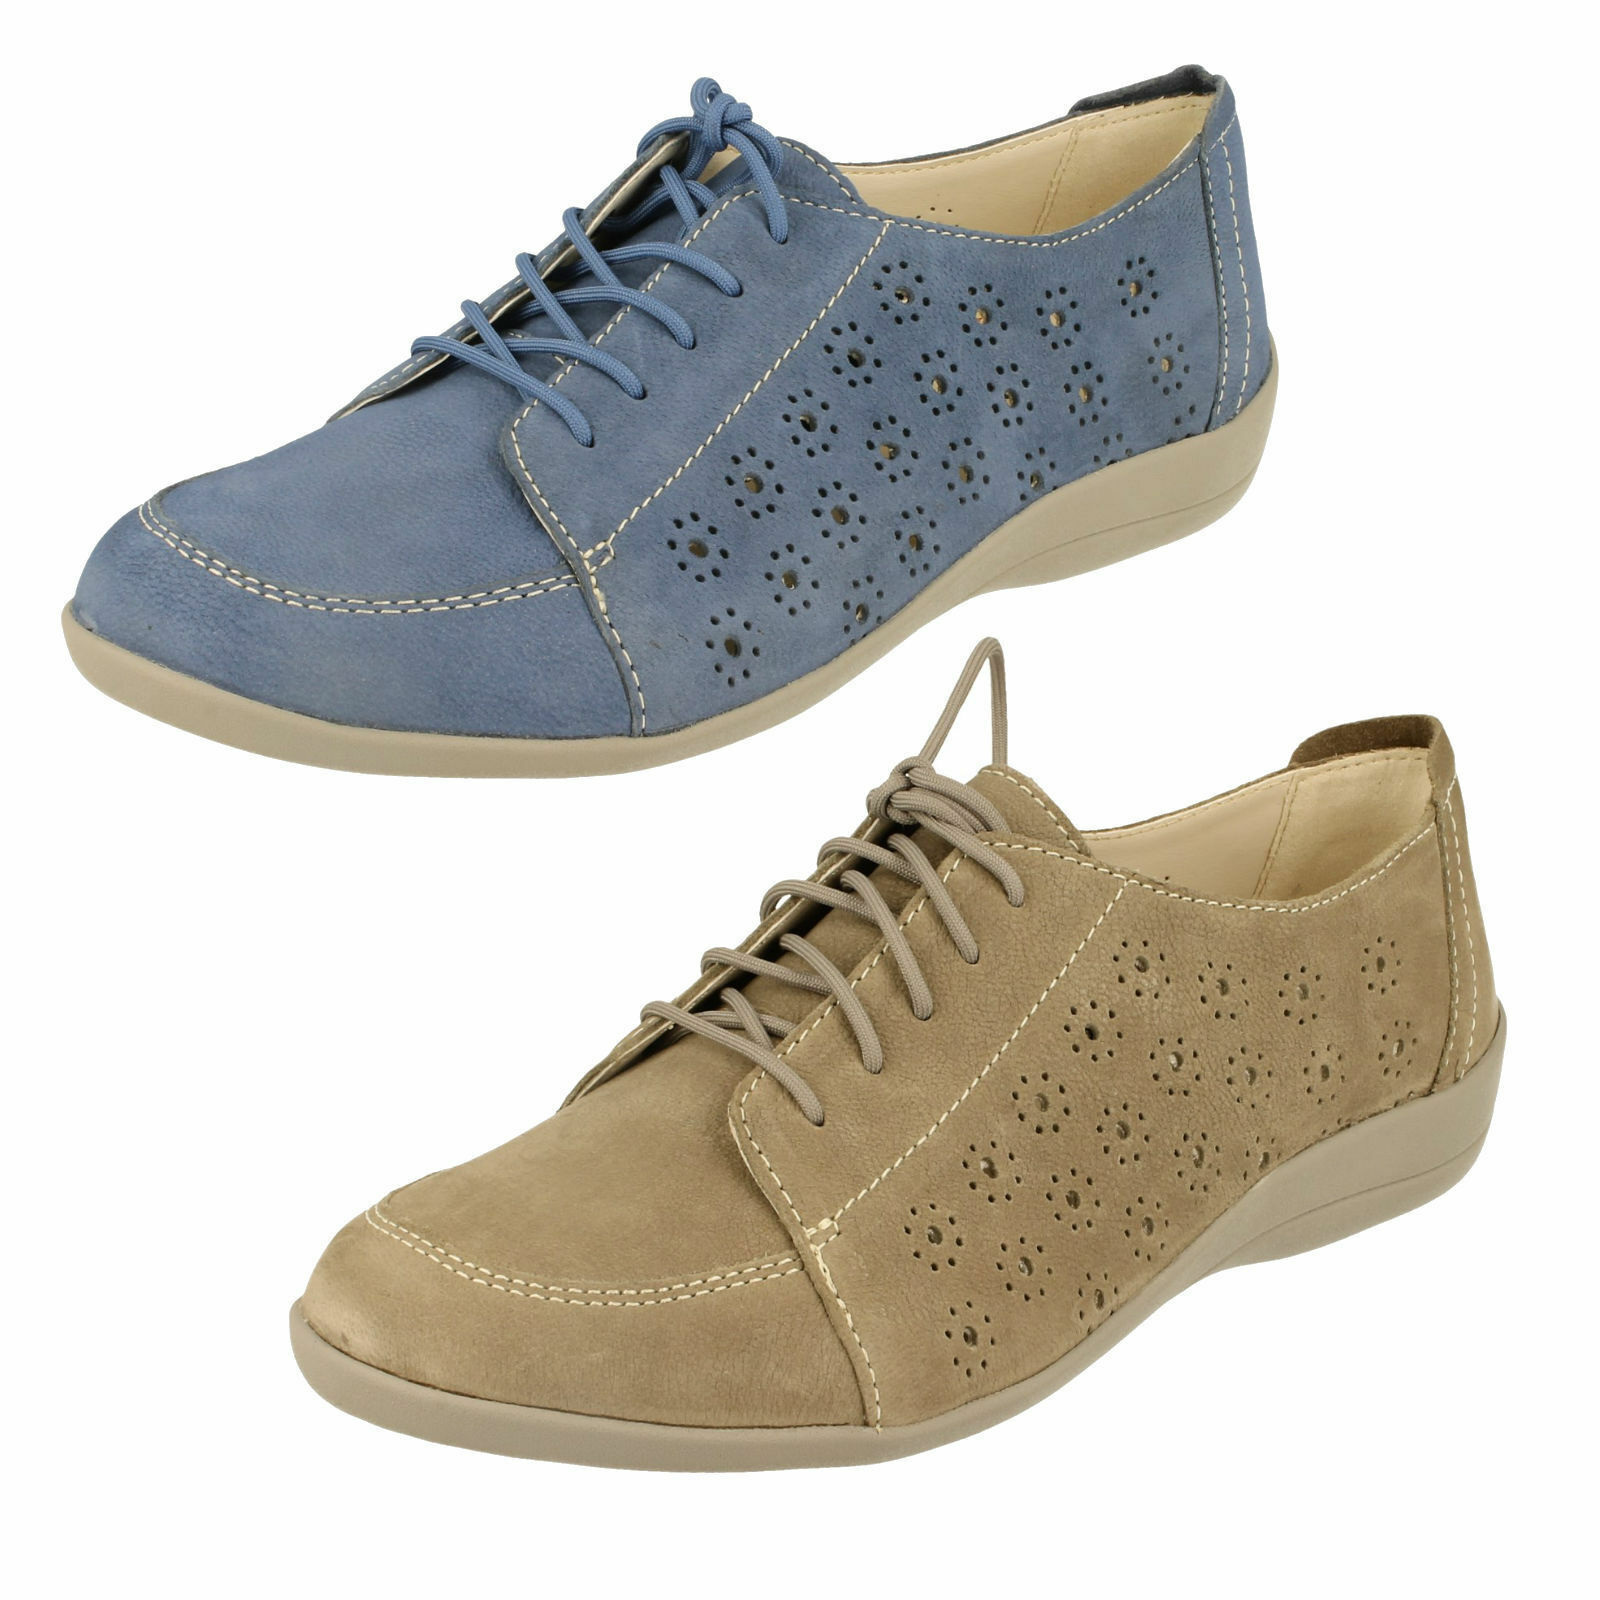 Padders - Femme bleu Denim chaussures à Lacets Cuir Darcy Coupe Ee